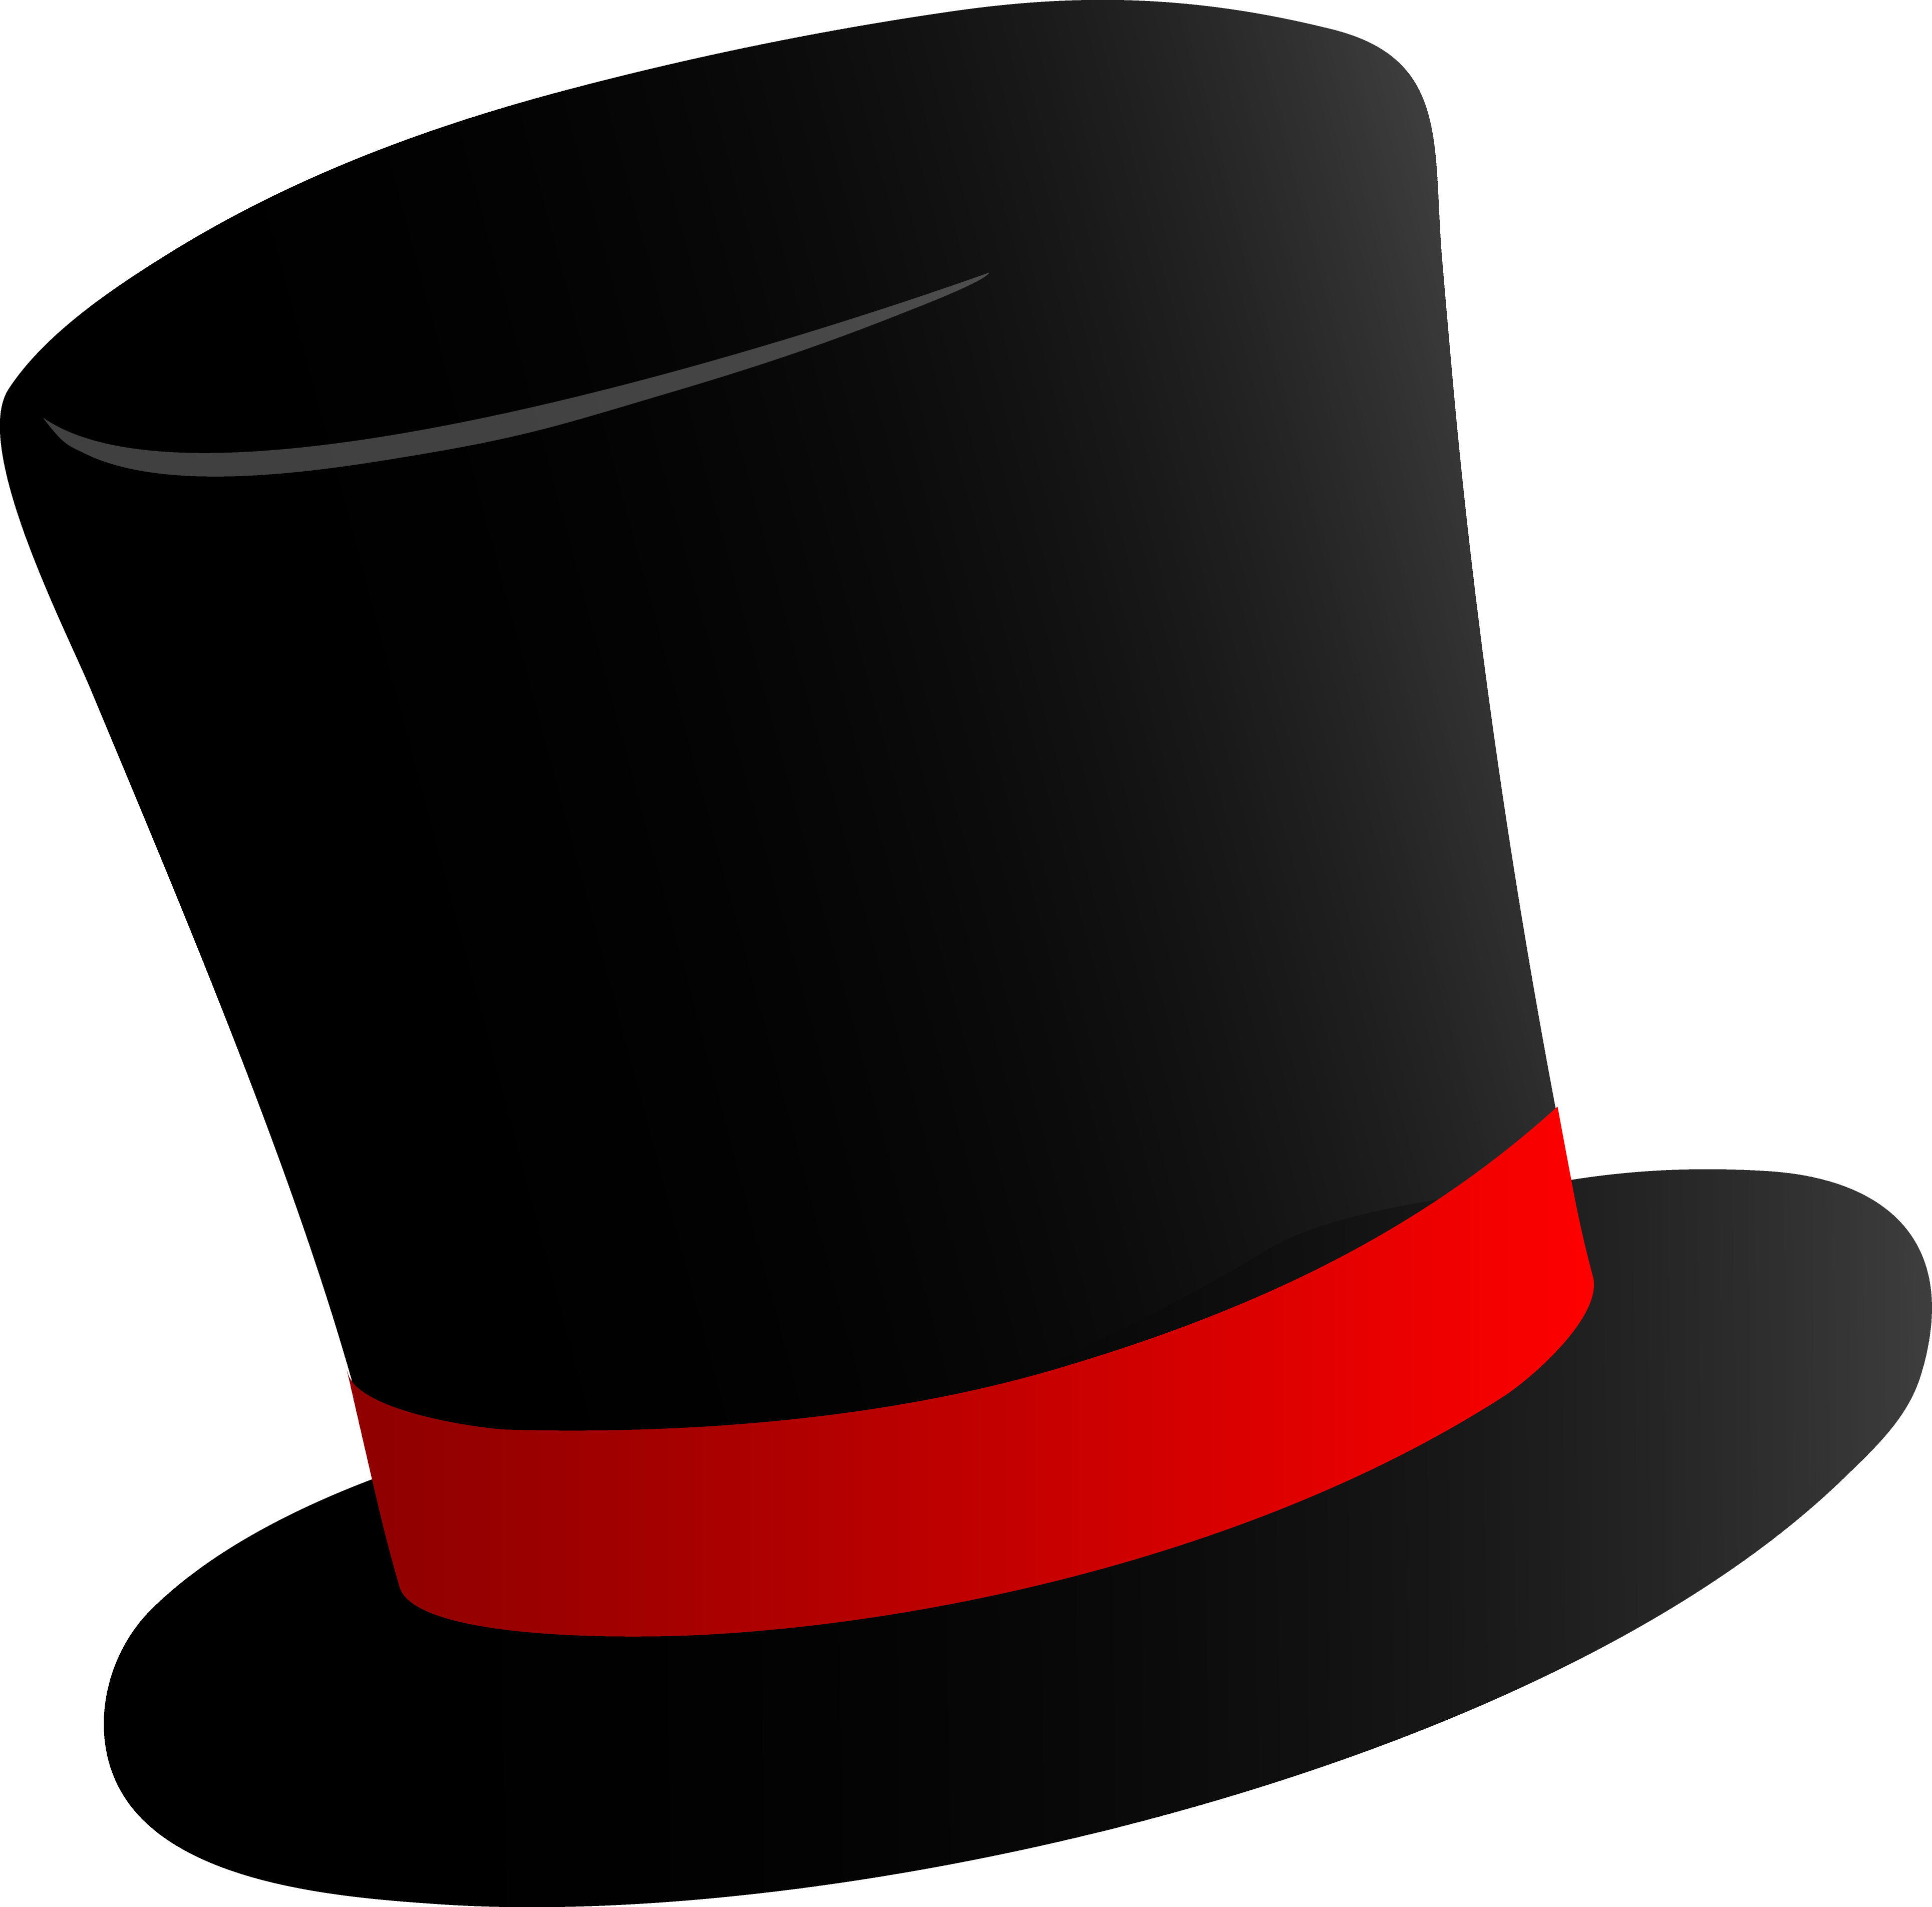 Hat clipart #12, Download drawings